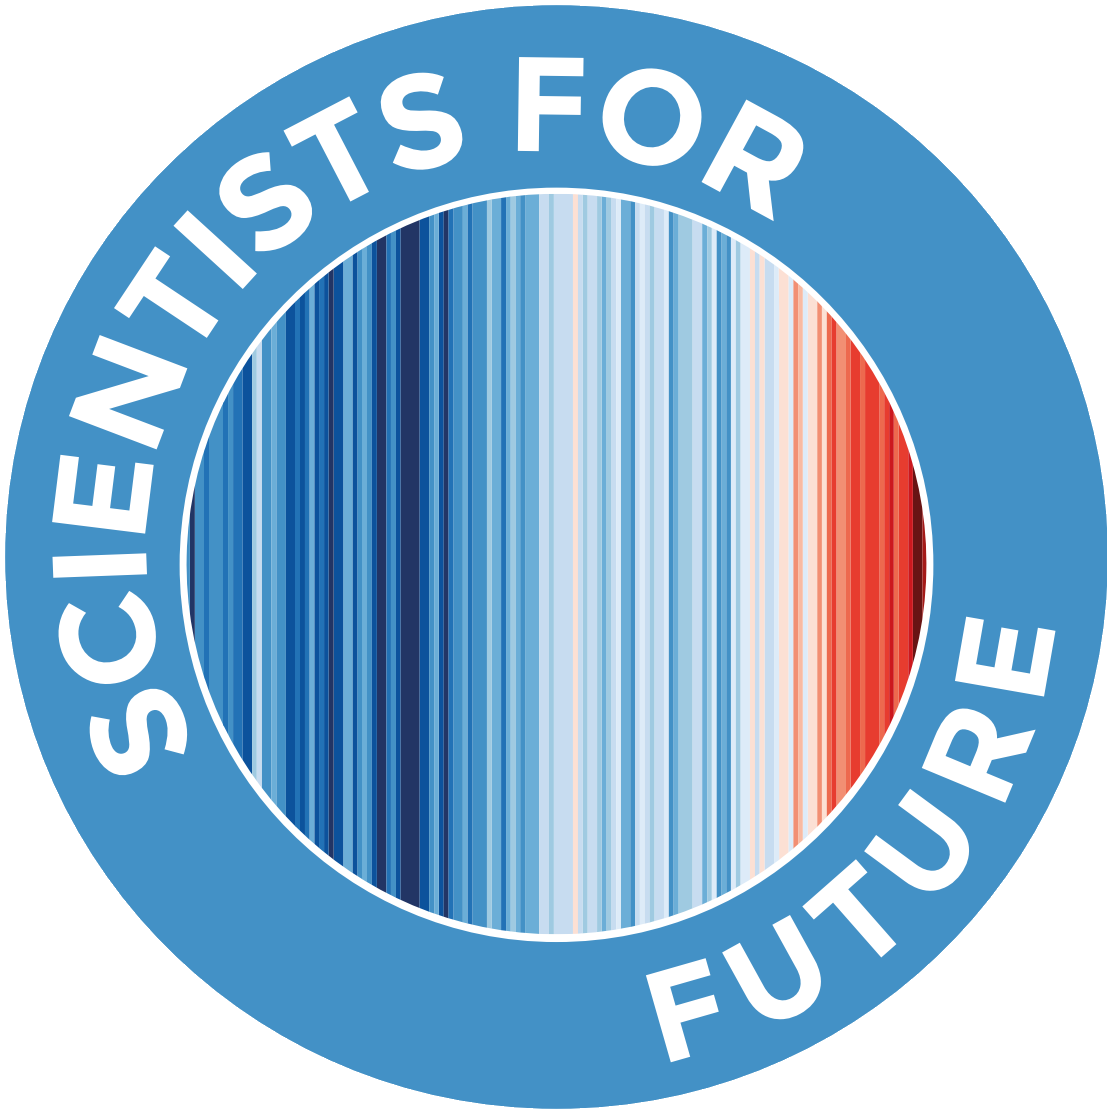 Scientists 4 future